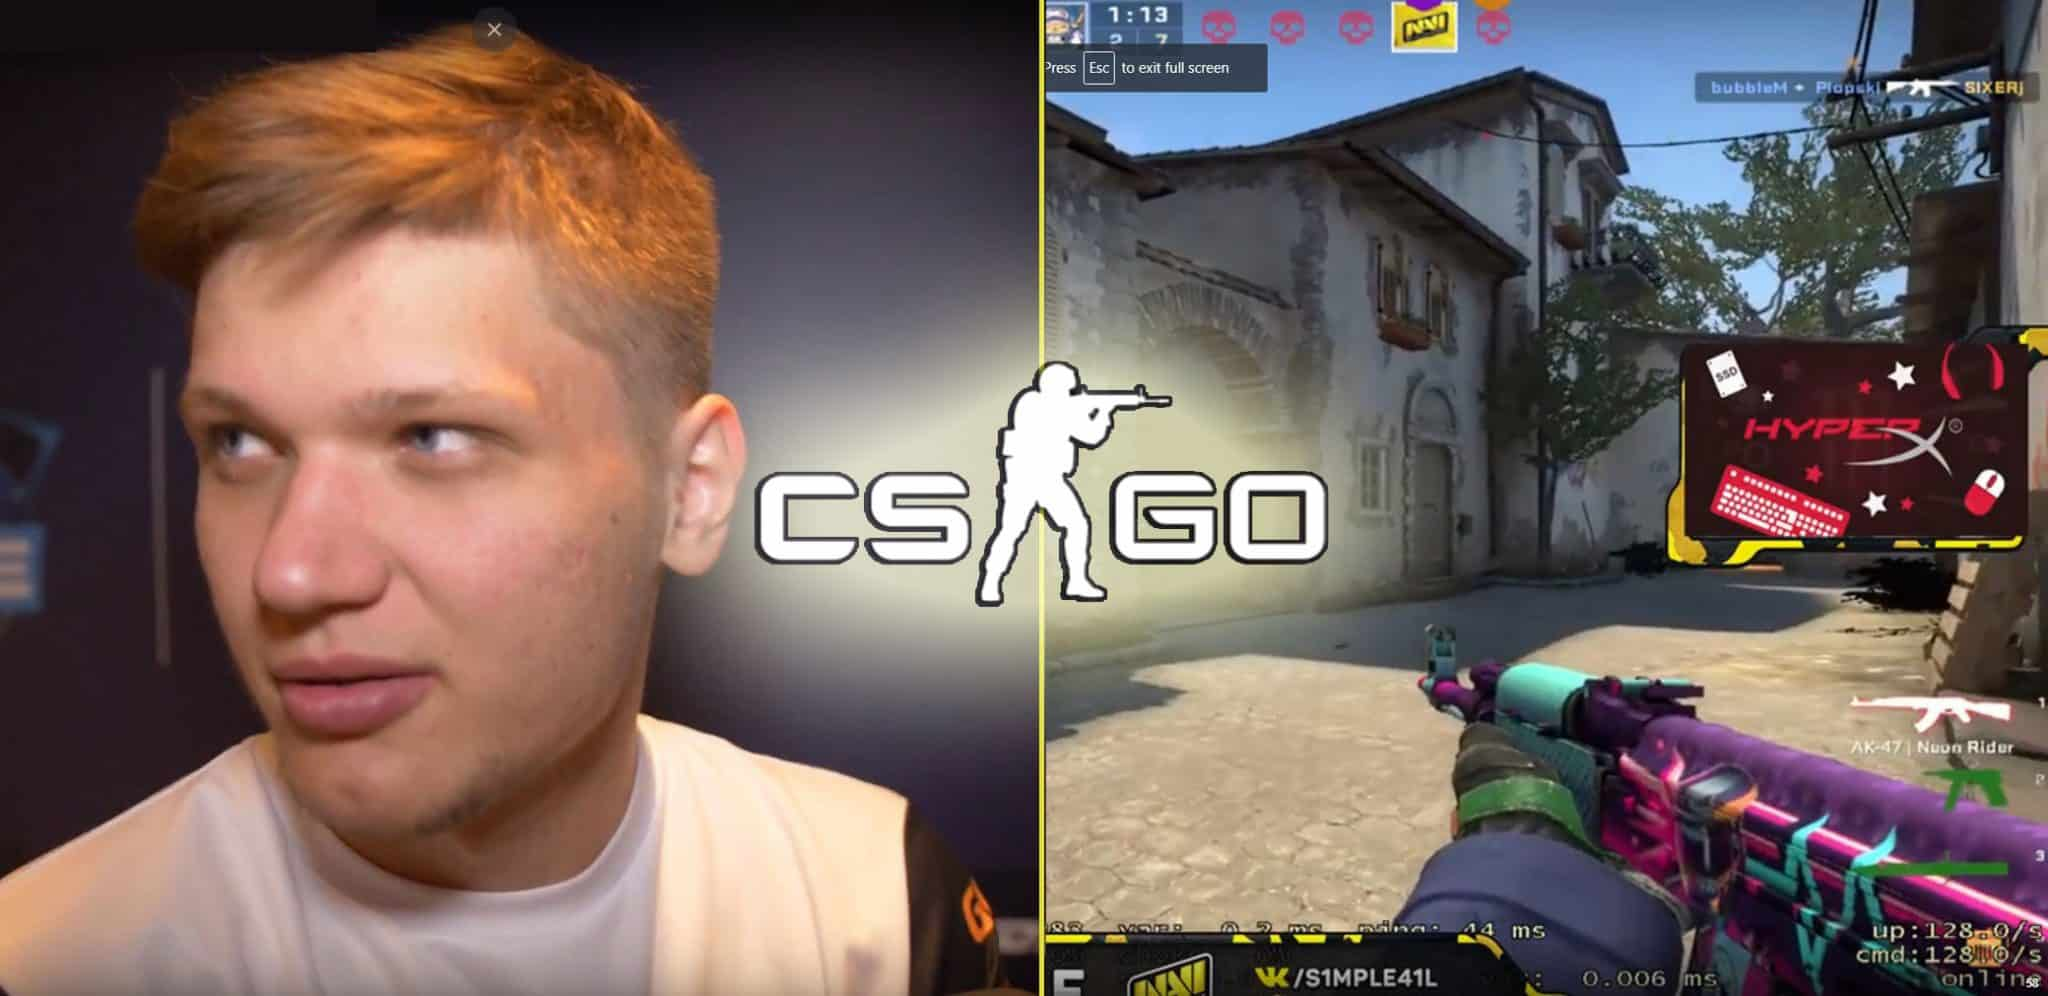 s1mple Join FaZe esports counter strike CSGO Pro league